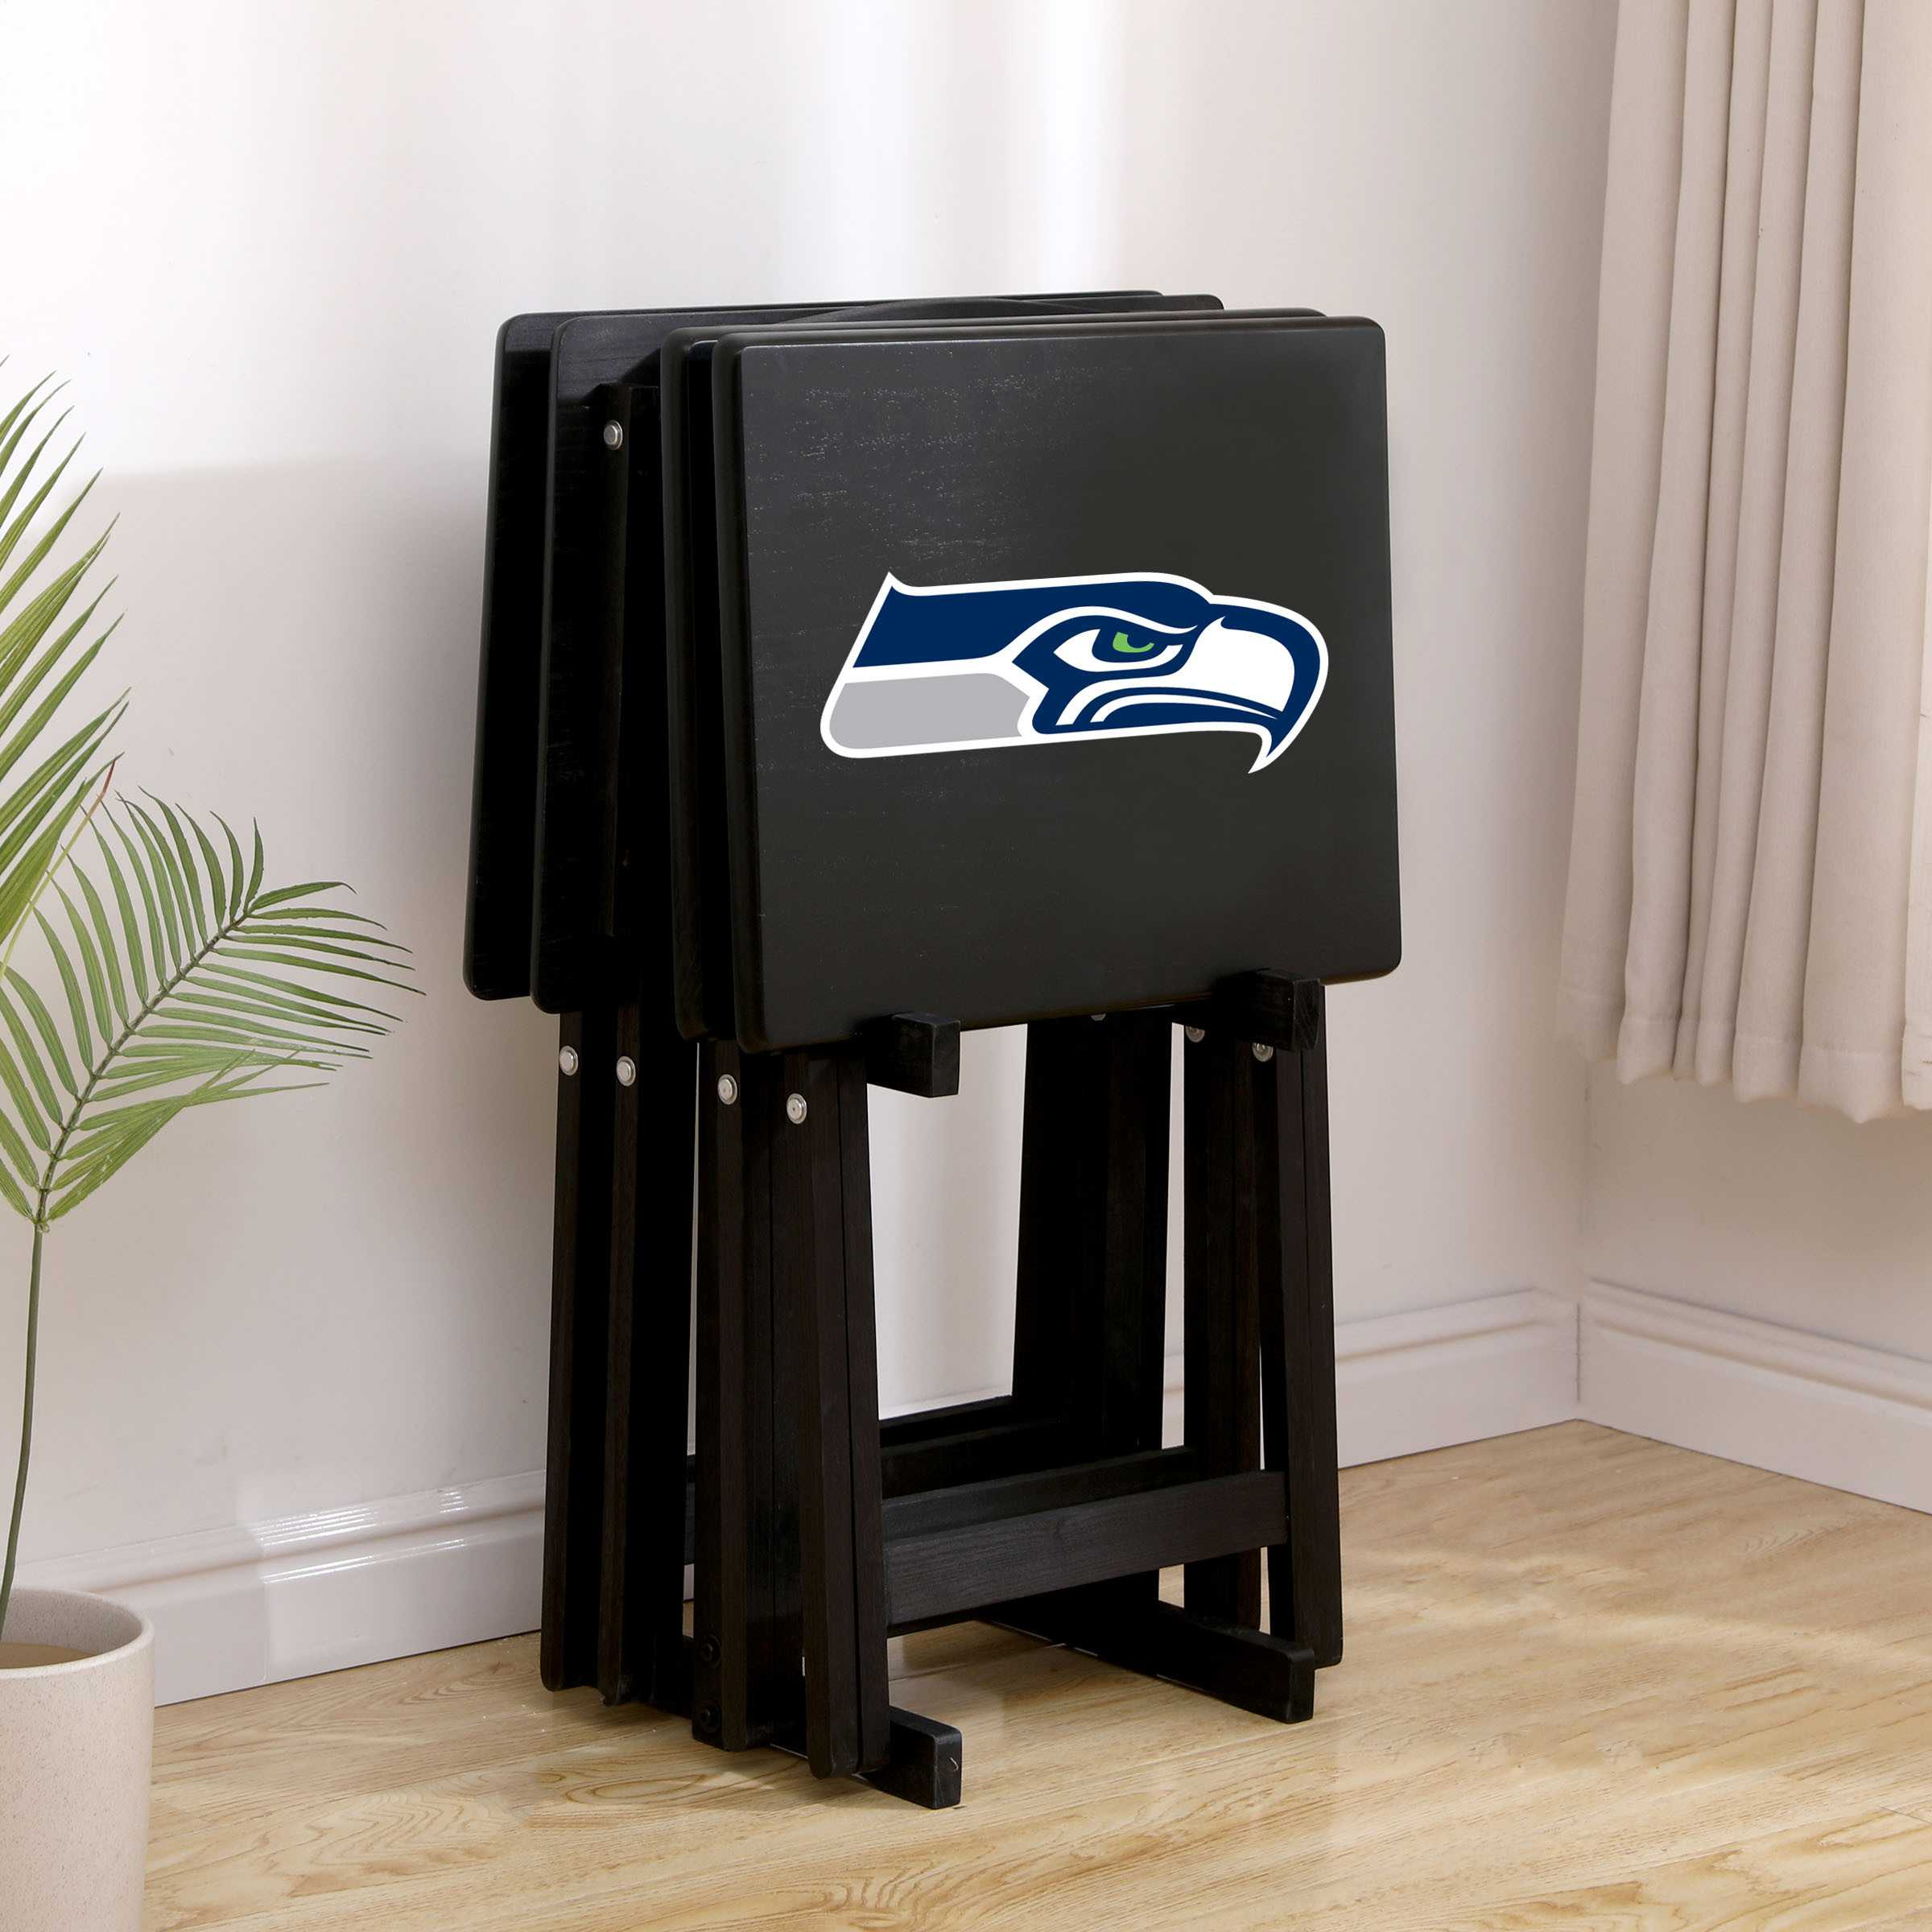 SEATTLE SEAHAWKS 4 TV TRAYS WITH STAND